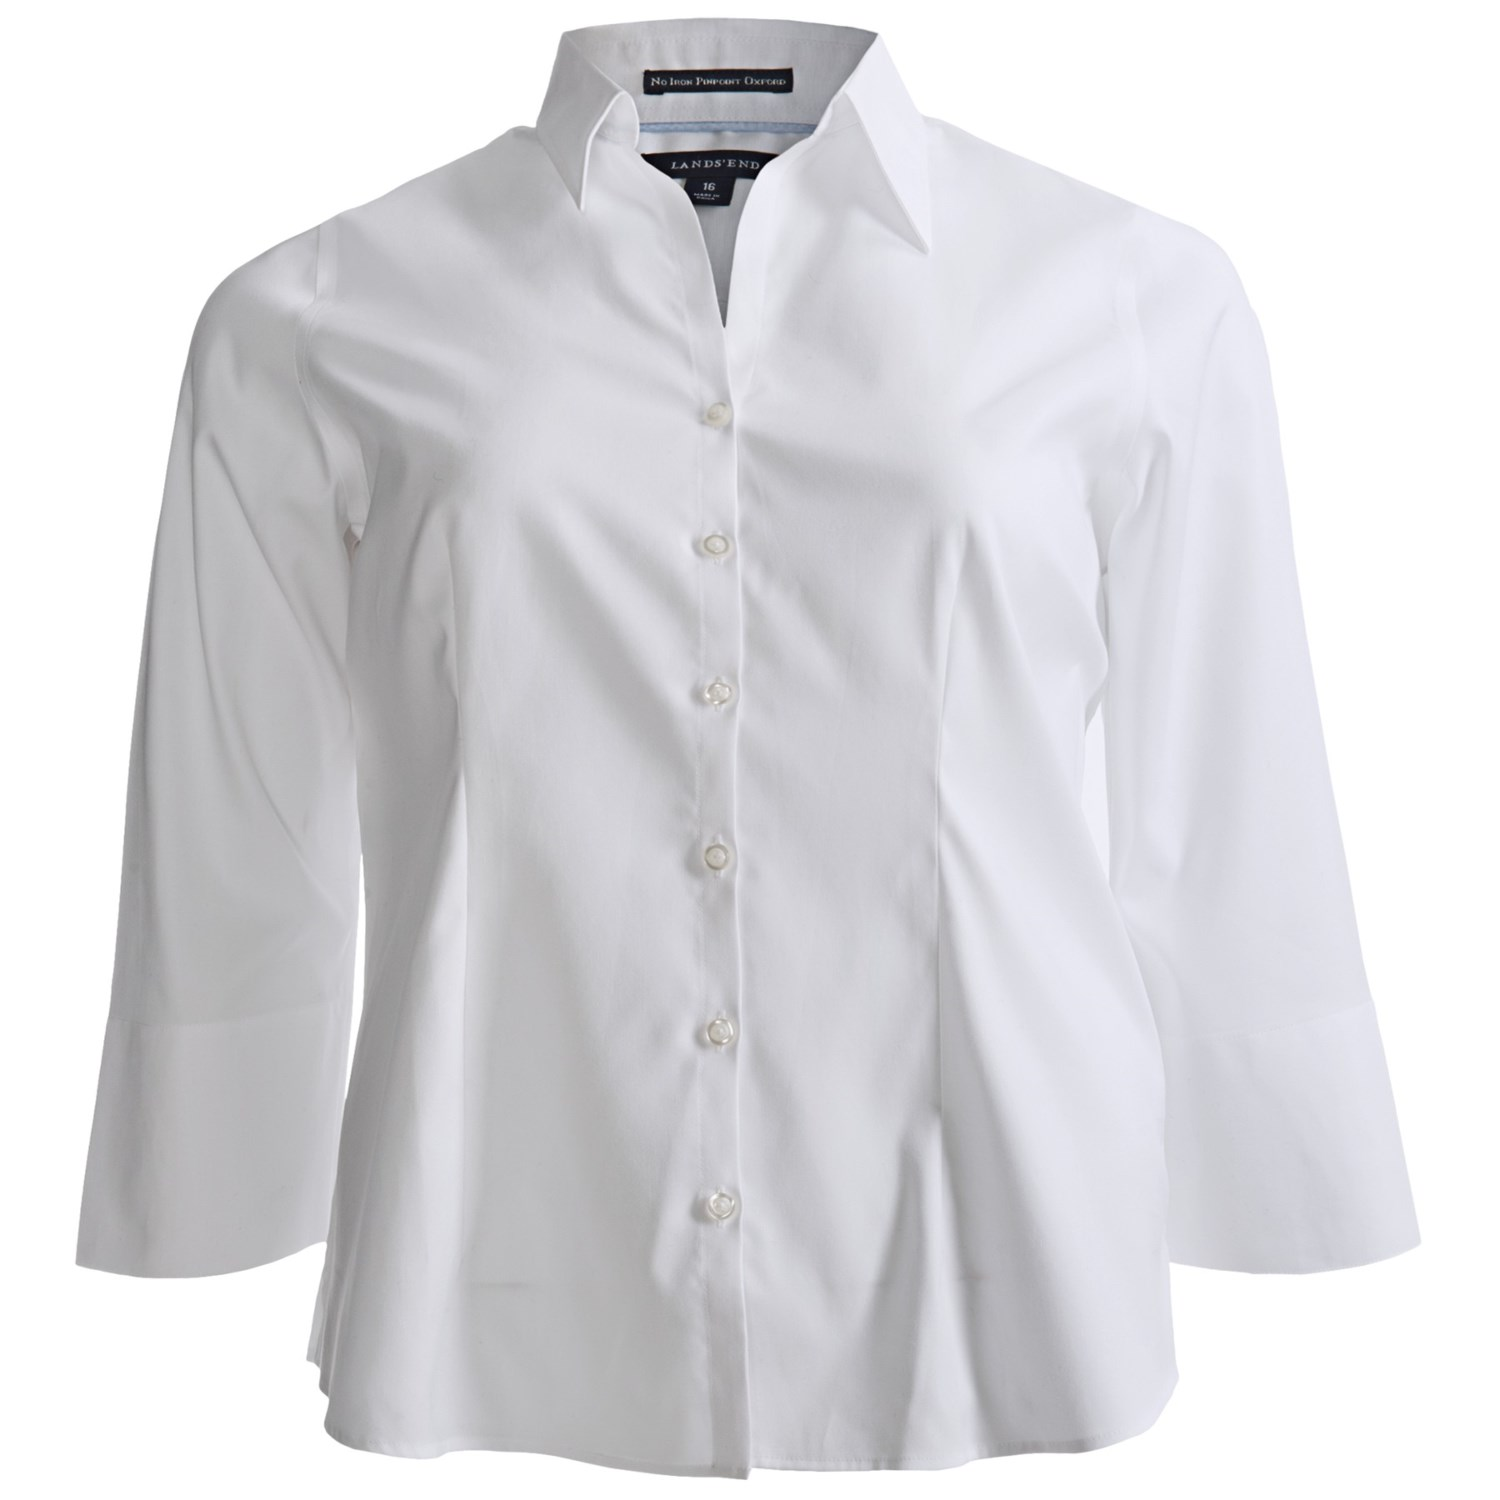 Lands end no iron pinpoint shirt split neck 3 4 sleeve for No iron white shirt womens